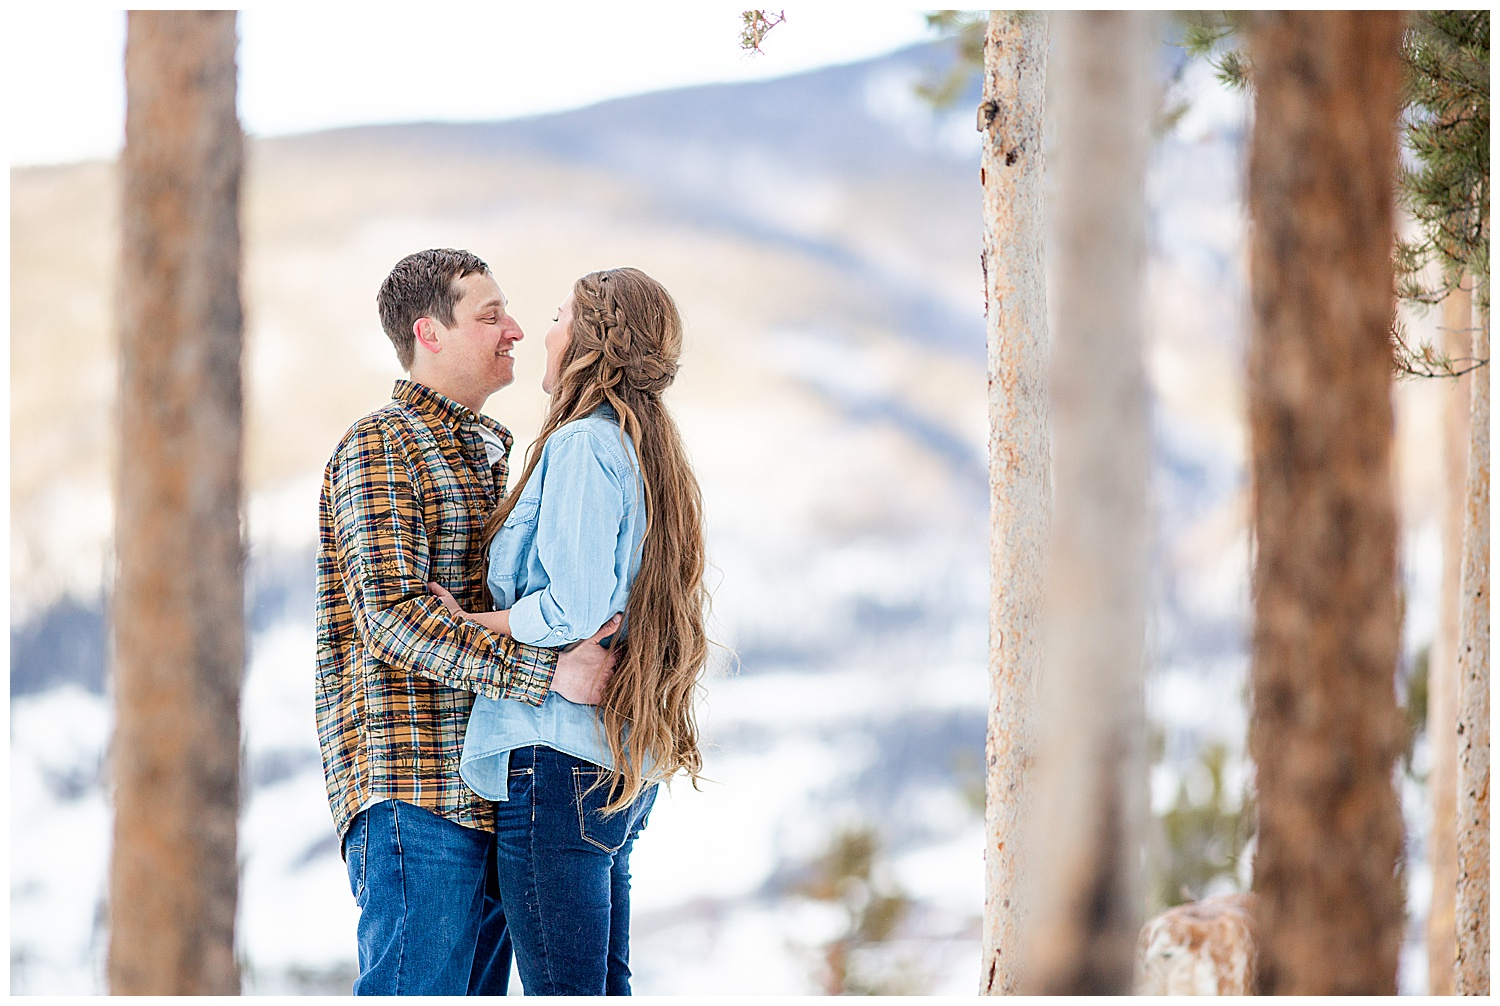 Winter-Breckenridge-Colorado-Engagement-Session_0016.jpg